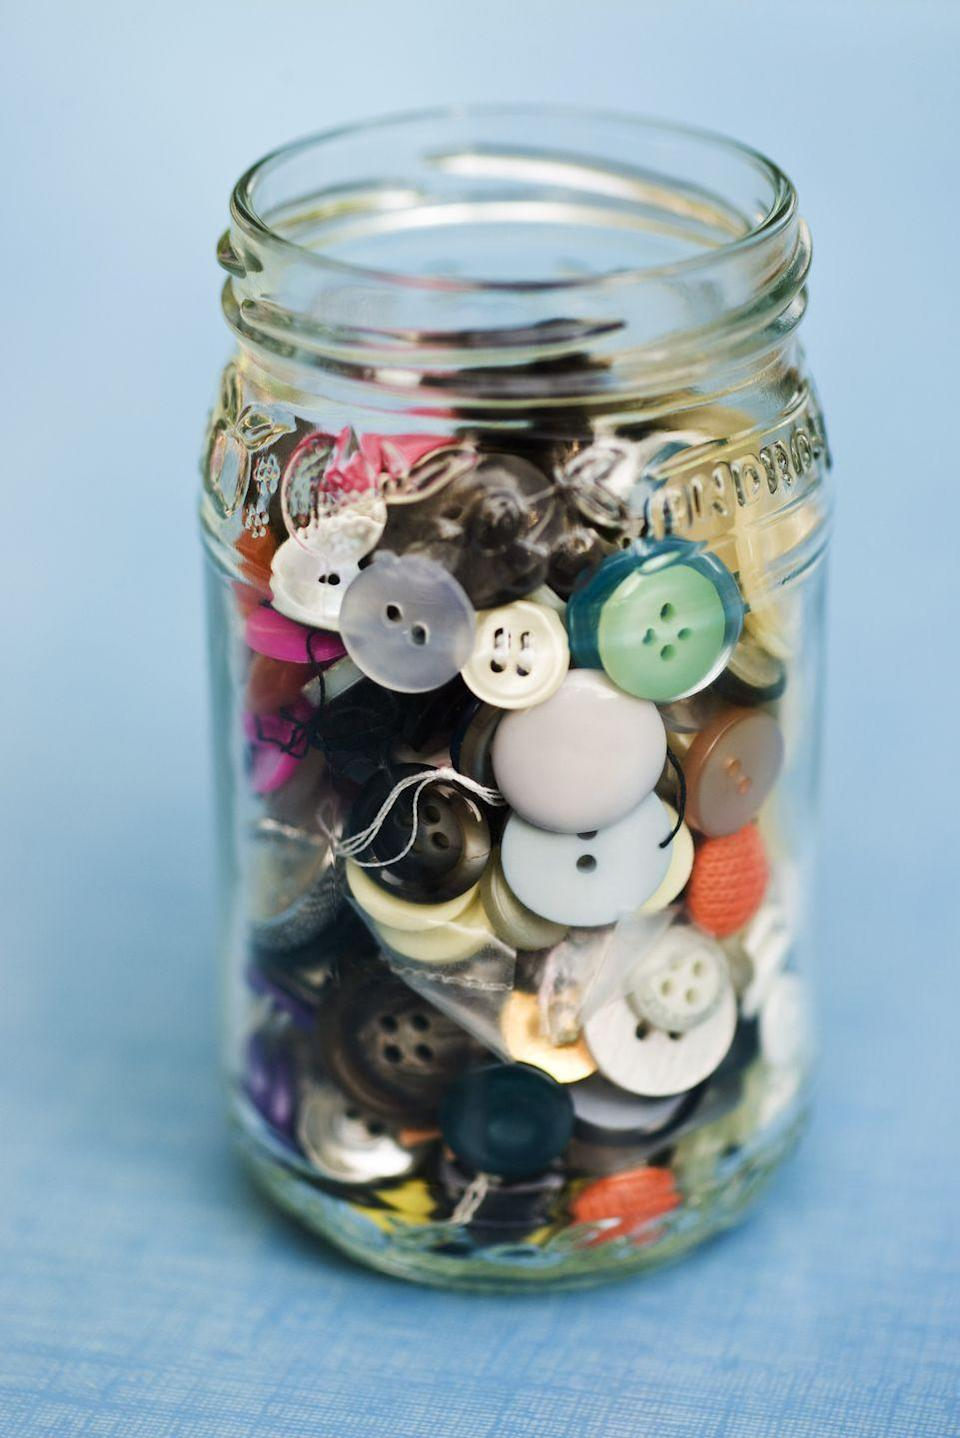 "<p>Unless of course you plan to use those abandoned buttons for a <a href=""https://www.countryliving.com/diy-crafts/how-to/a42086/diy-button-art/"" rel=""nofollow noopener"" target=""_blank"" data-ylk=""slk:cute craft"" class=""link rapid-noclick-resp"">cute craft</a> or have them prettily organized in a <a href=""https://www.countryliving.com/shopping/gifts/g2057/mason-jar-gift-ideas/"" rel=""nofollow noopener"" target=""_blank"" data-ylk=""slk:mason jar"" class=""link rapid-noclick-resp"">mason jar</a>, those stray buttons lingering in old coat pockets aren't doing you any favors. </p>"